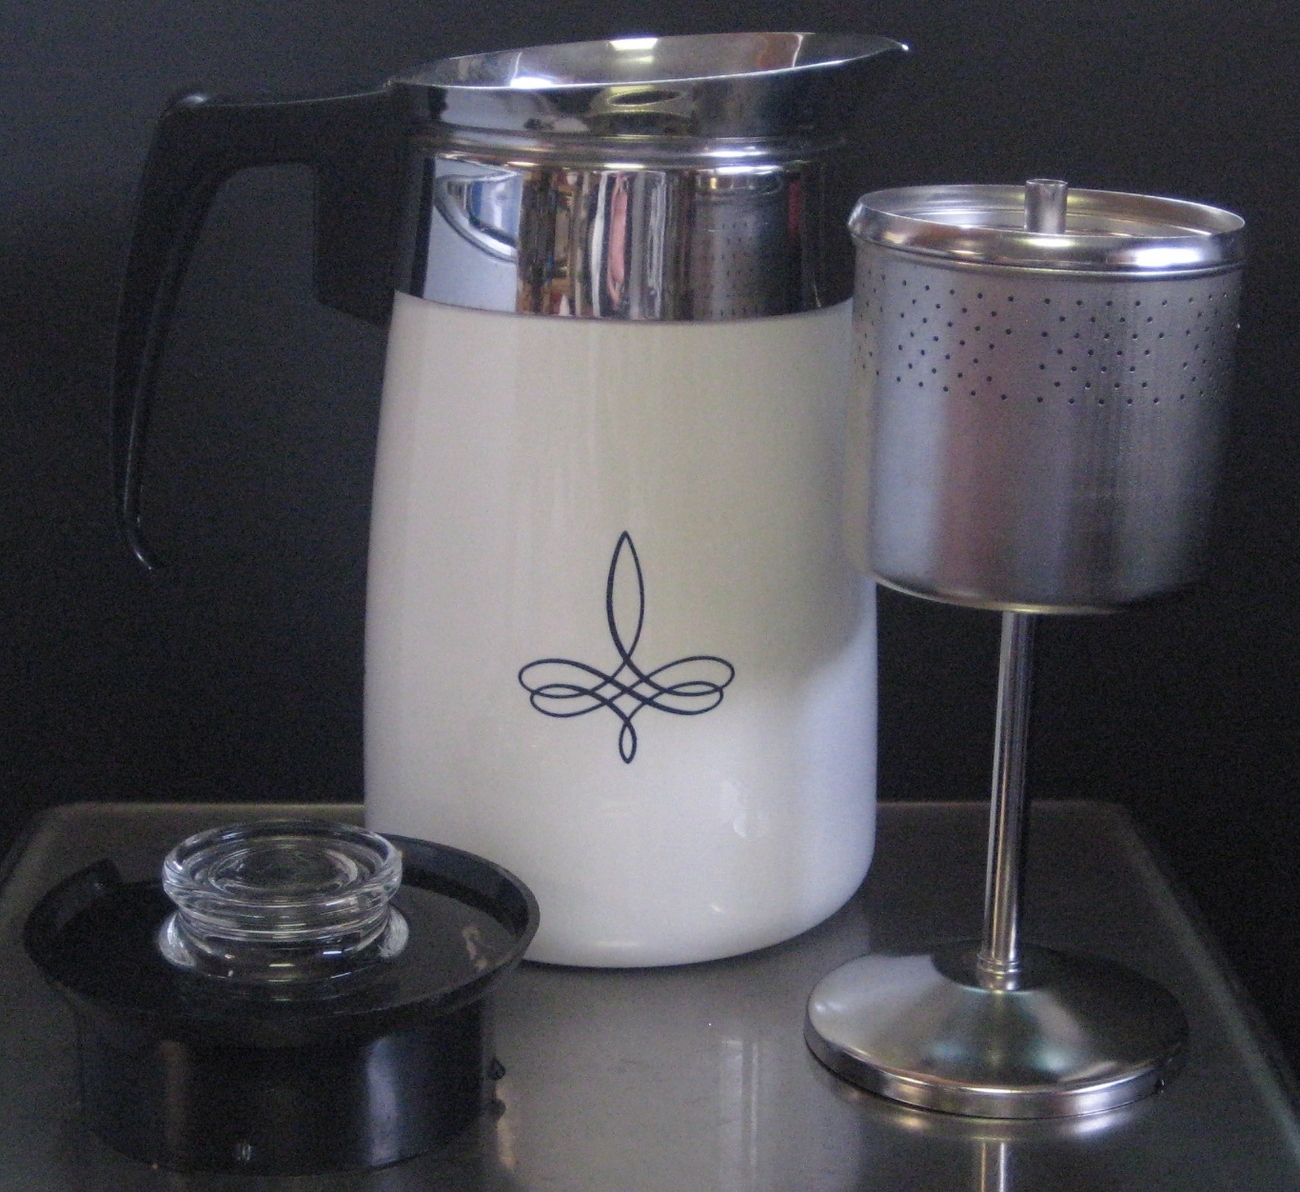 Rare vintage corning ware black trefoil 6 and 31 similar items for Best coffee percolator